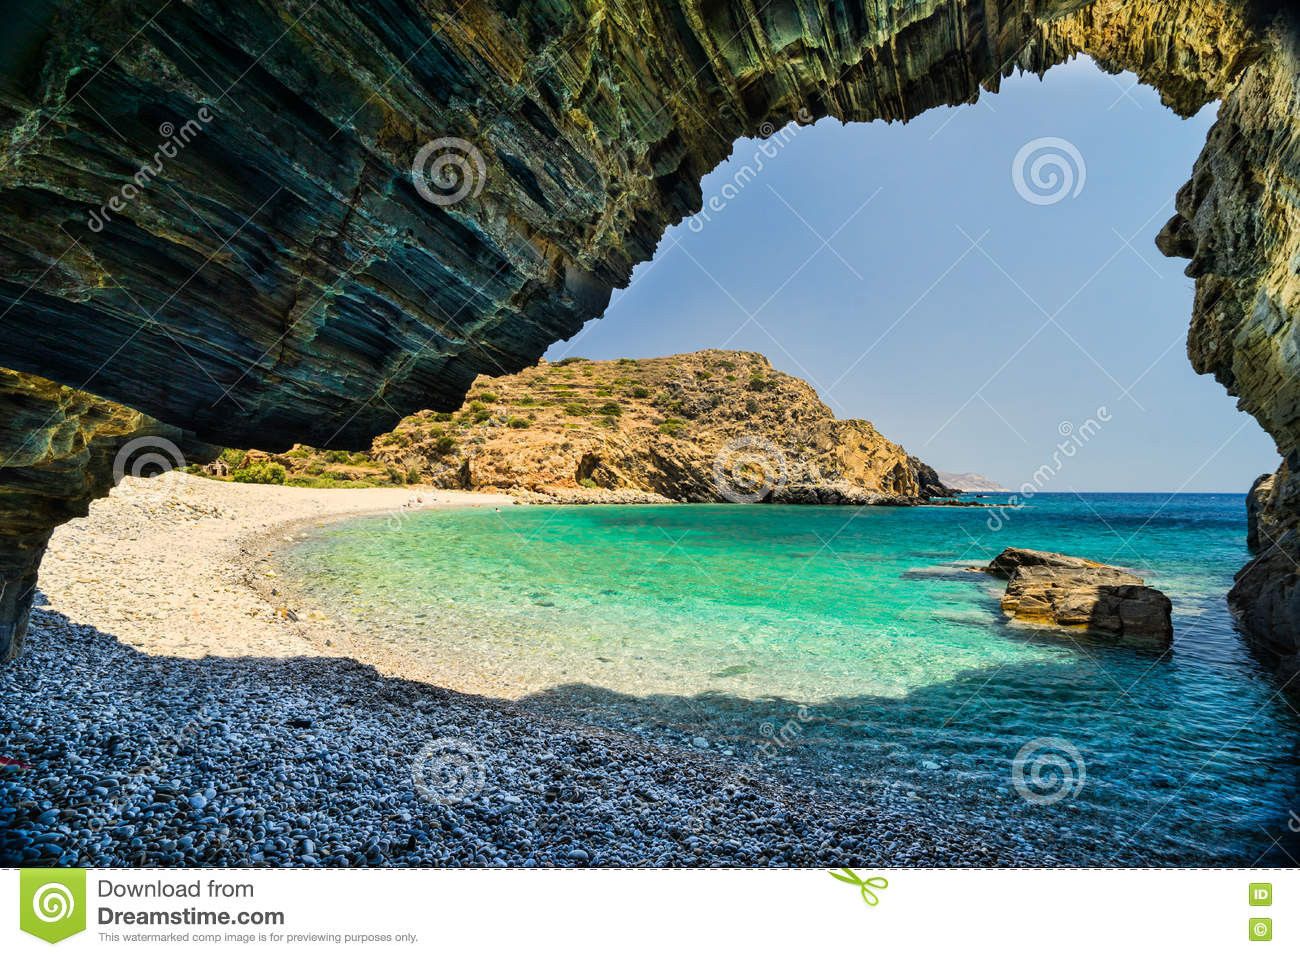 Beach with Cave